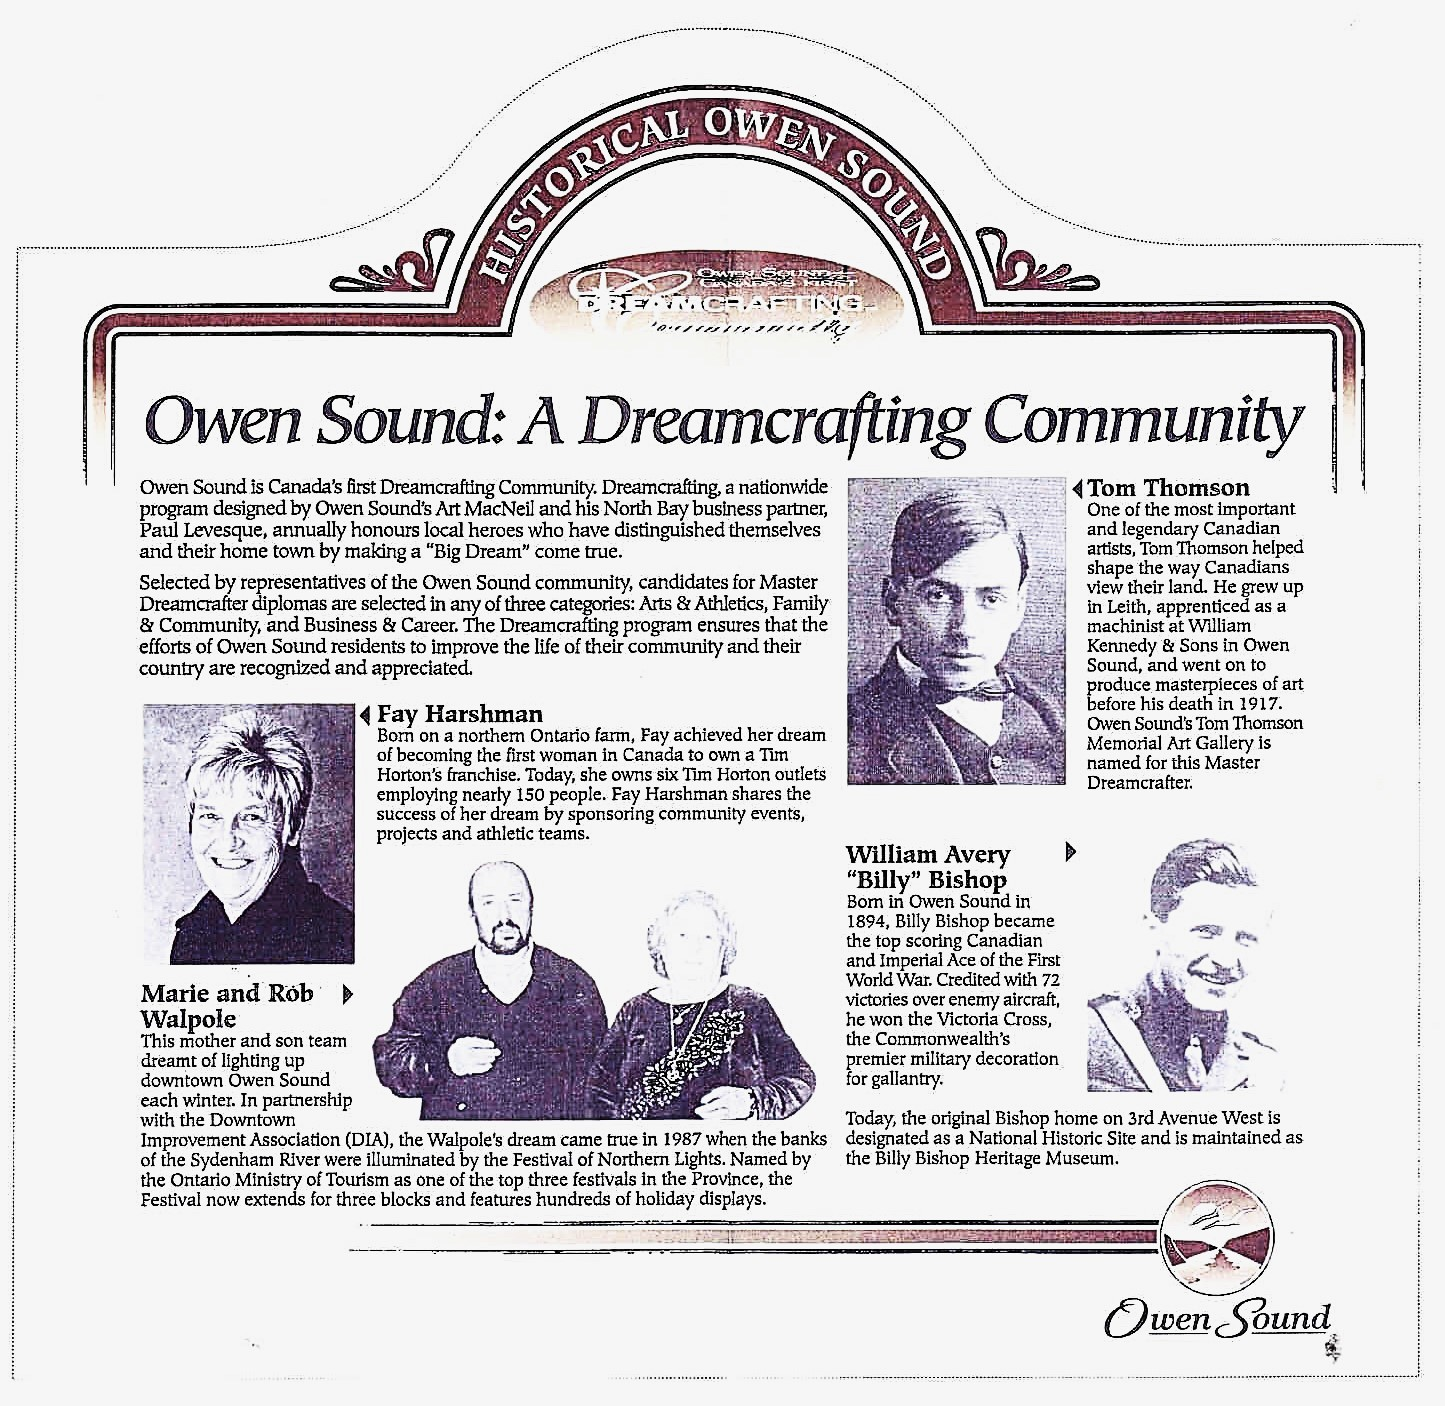 2003_ADreamcraftingCommunityPlaque_sharp.jpg